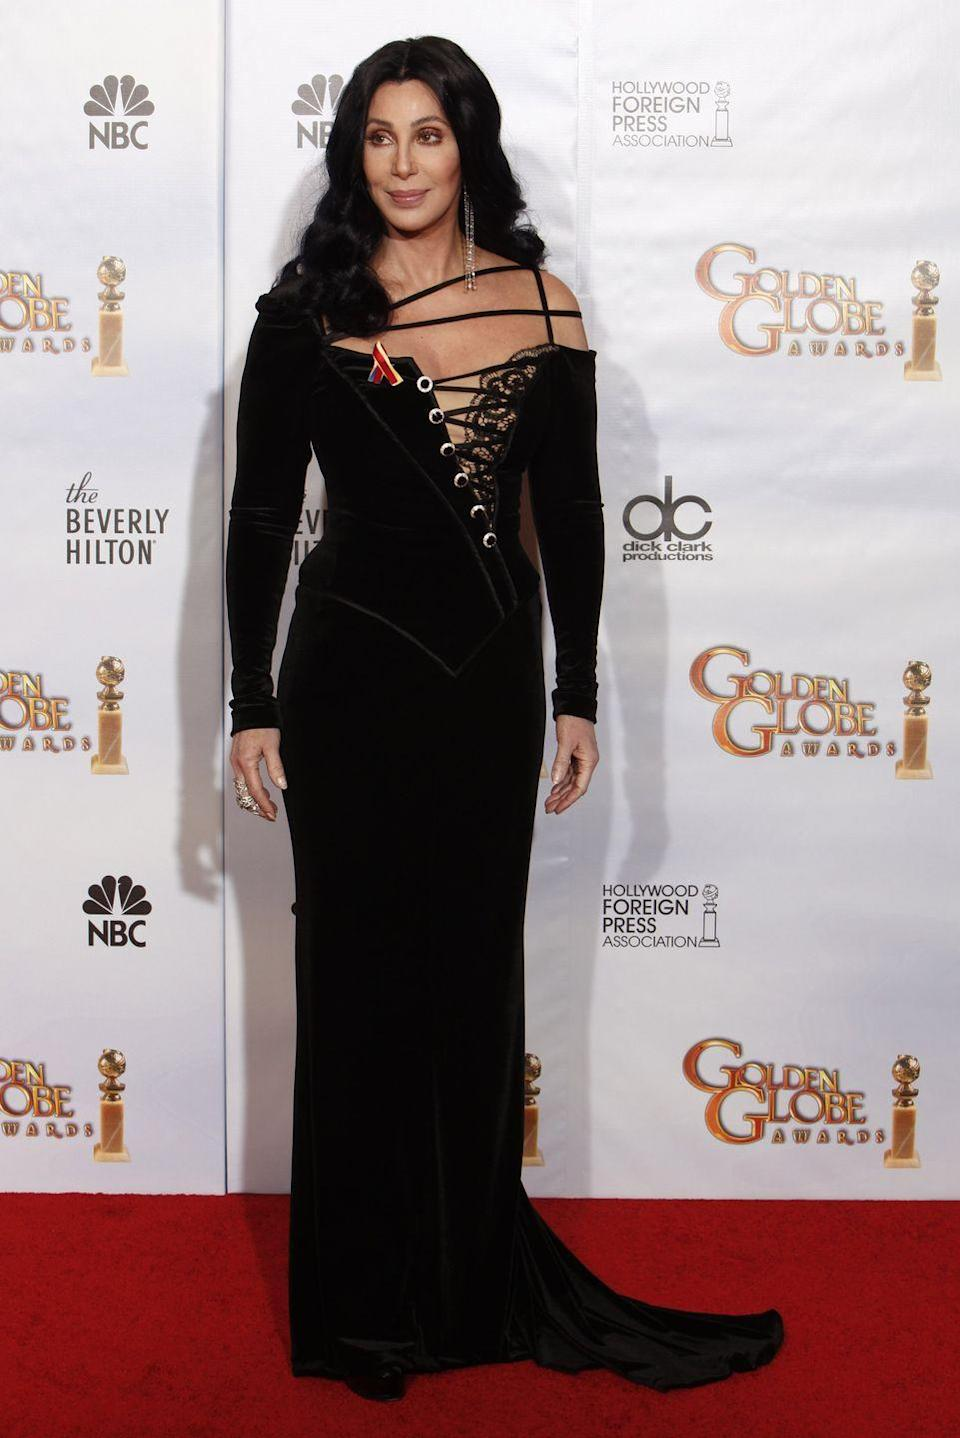 <p>In a black strappy gown at the Golden Globe Awards.</p>